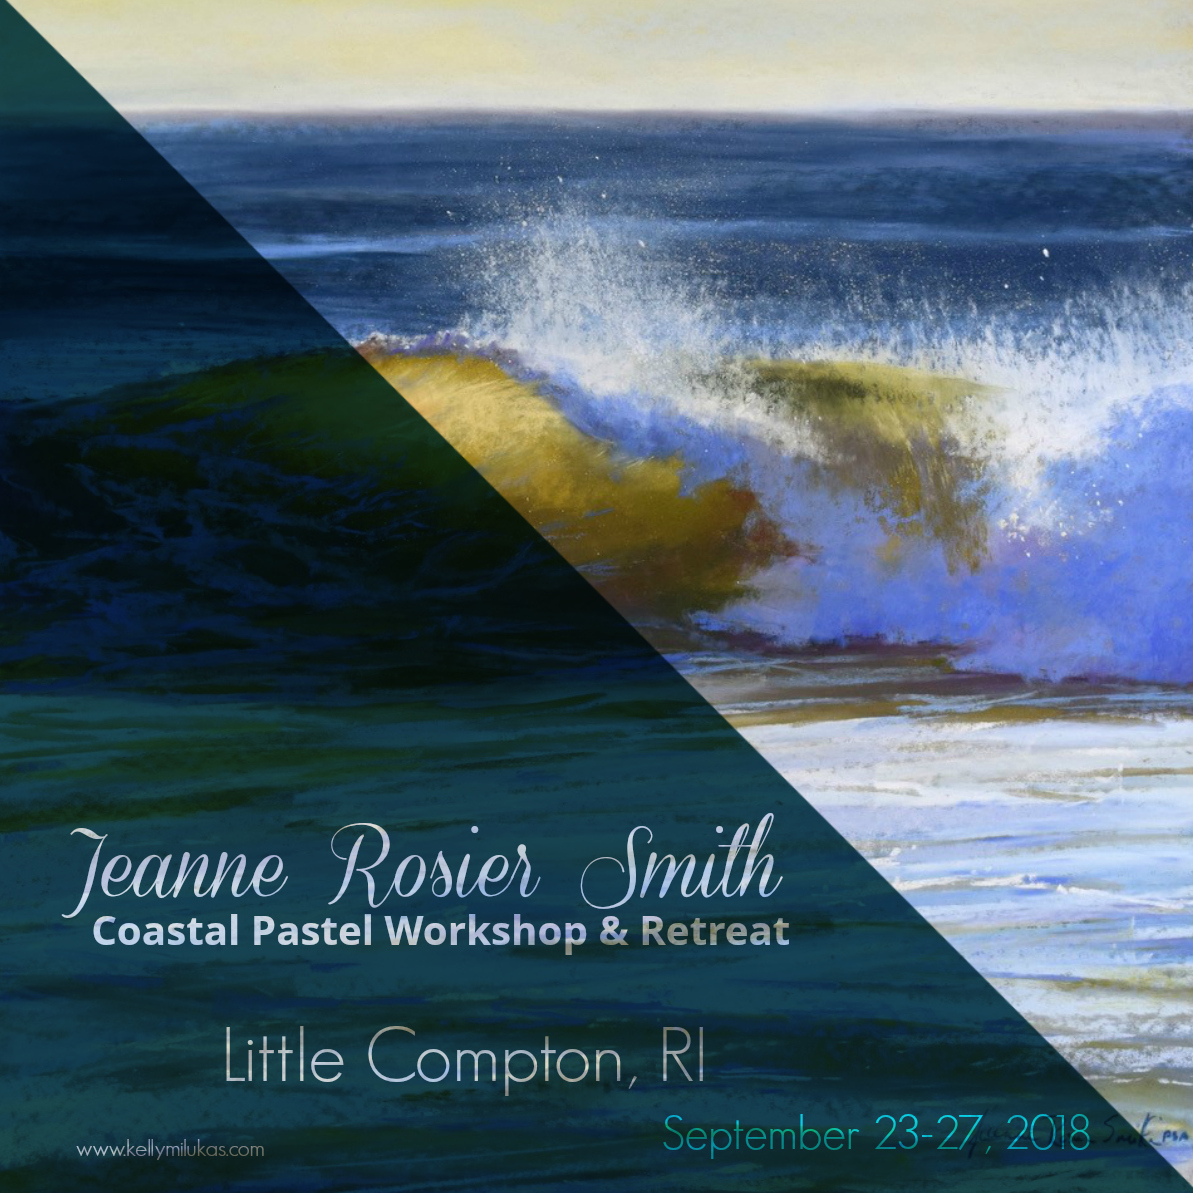 Pastel Workshop & Retreat Announced With Jeanne Rosier Smith